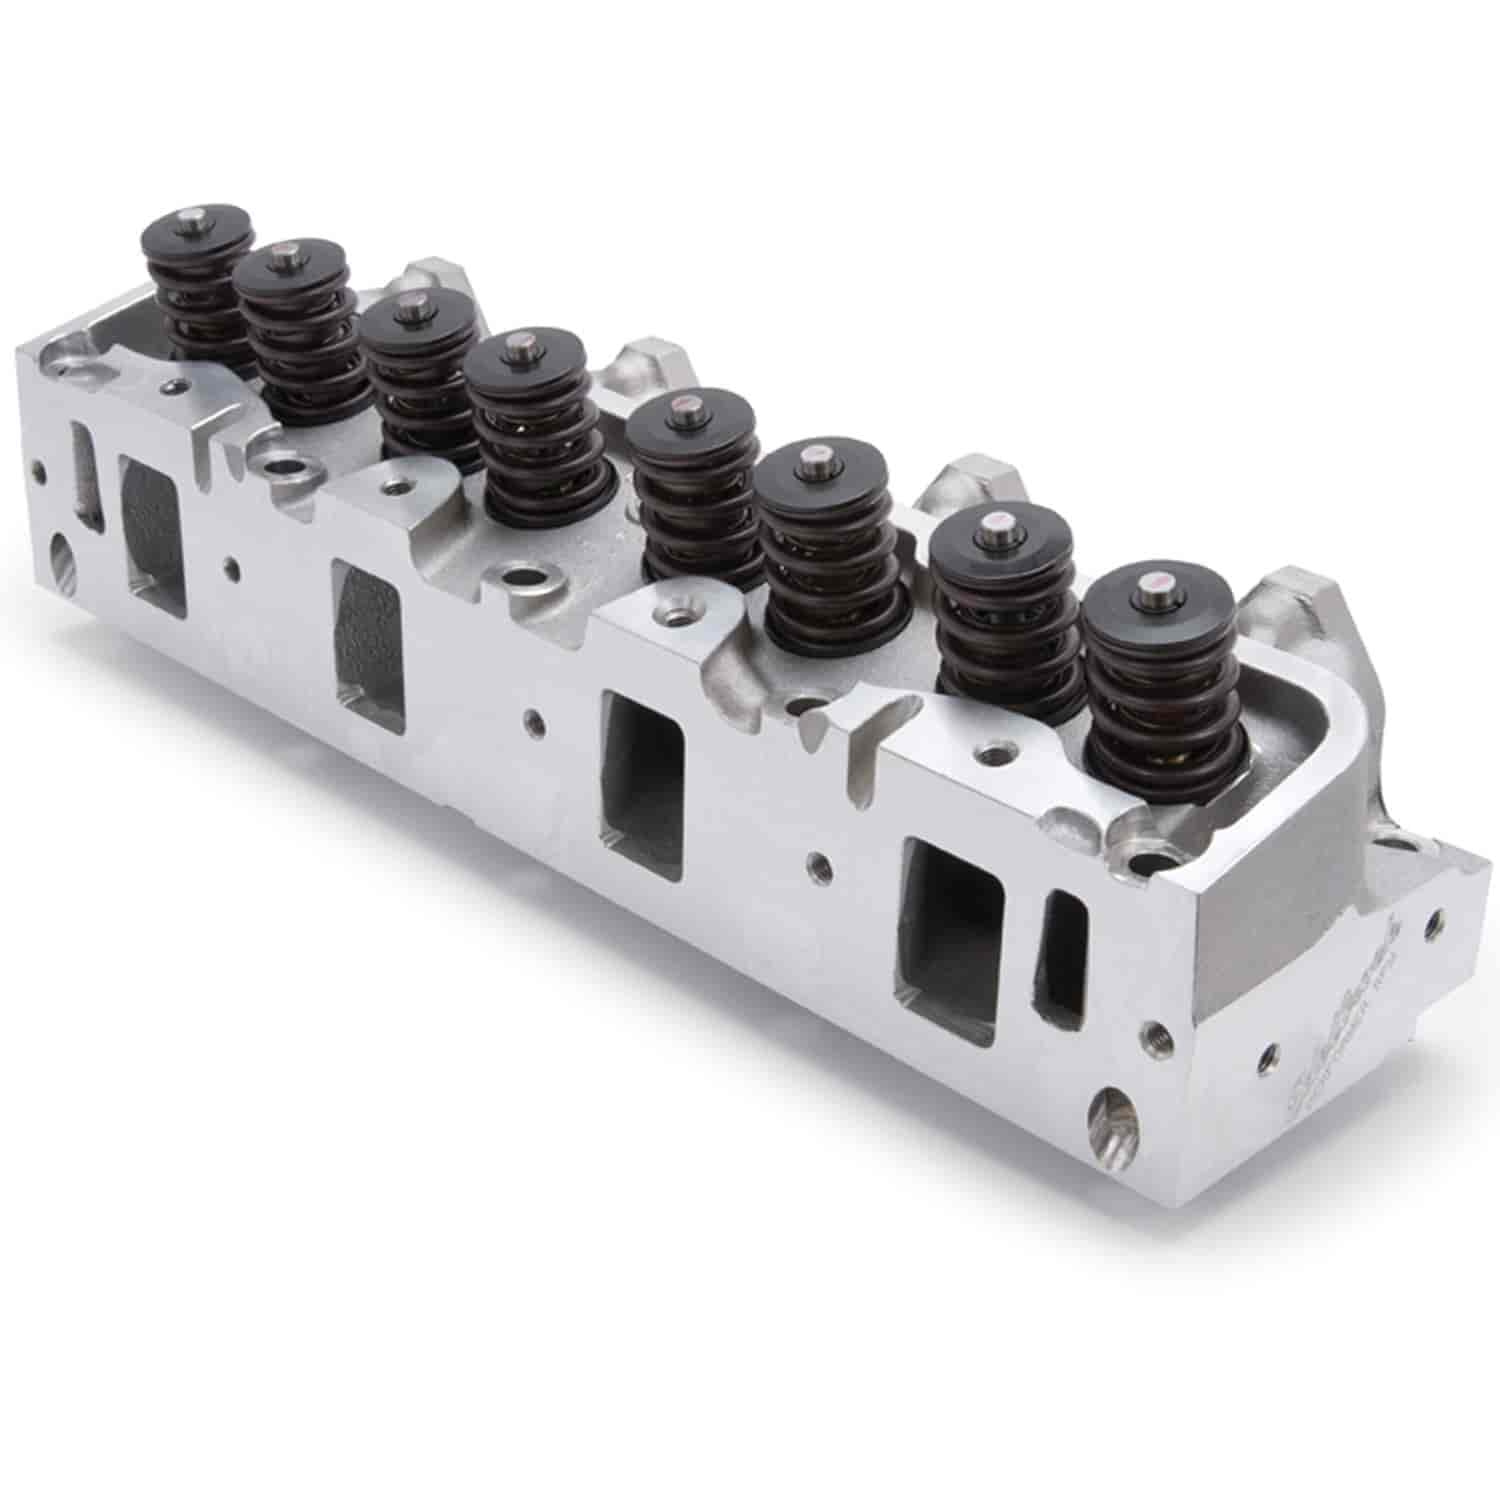 Edelbrock 60079 - Edelbrock Performer RPM Heads For Ford Big Block FE